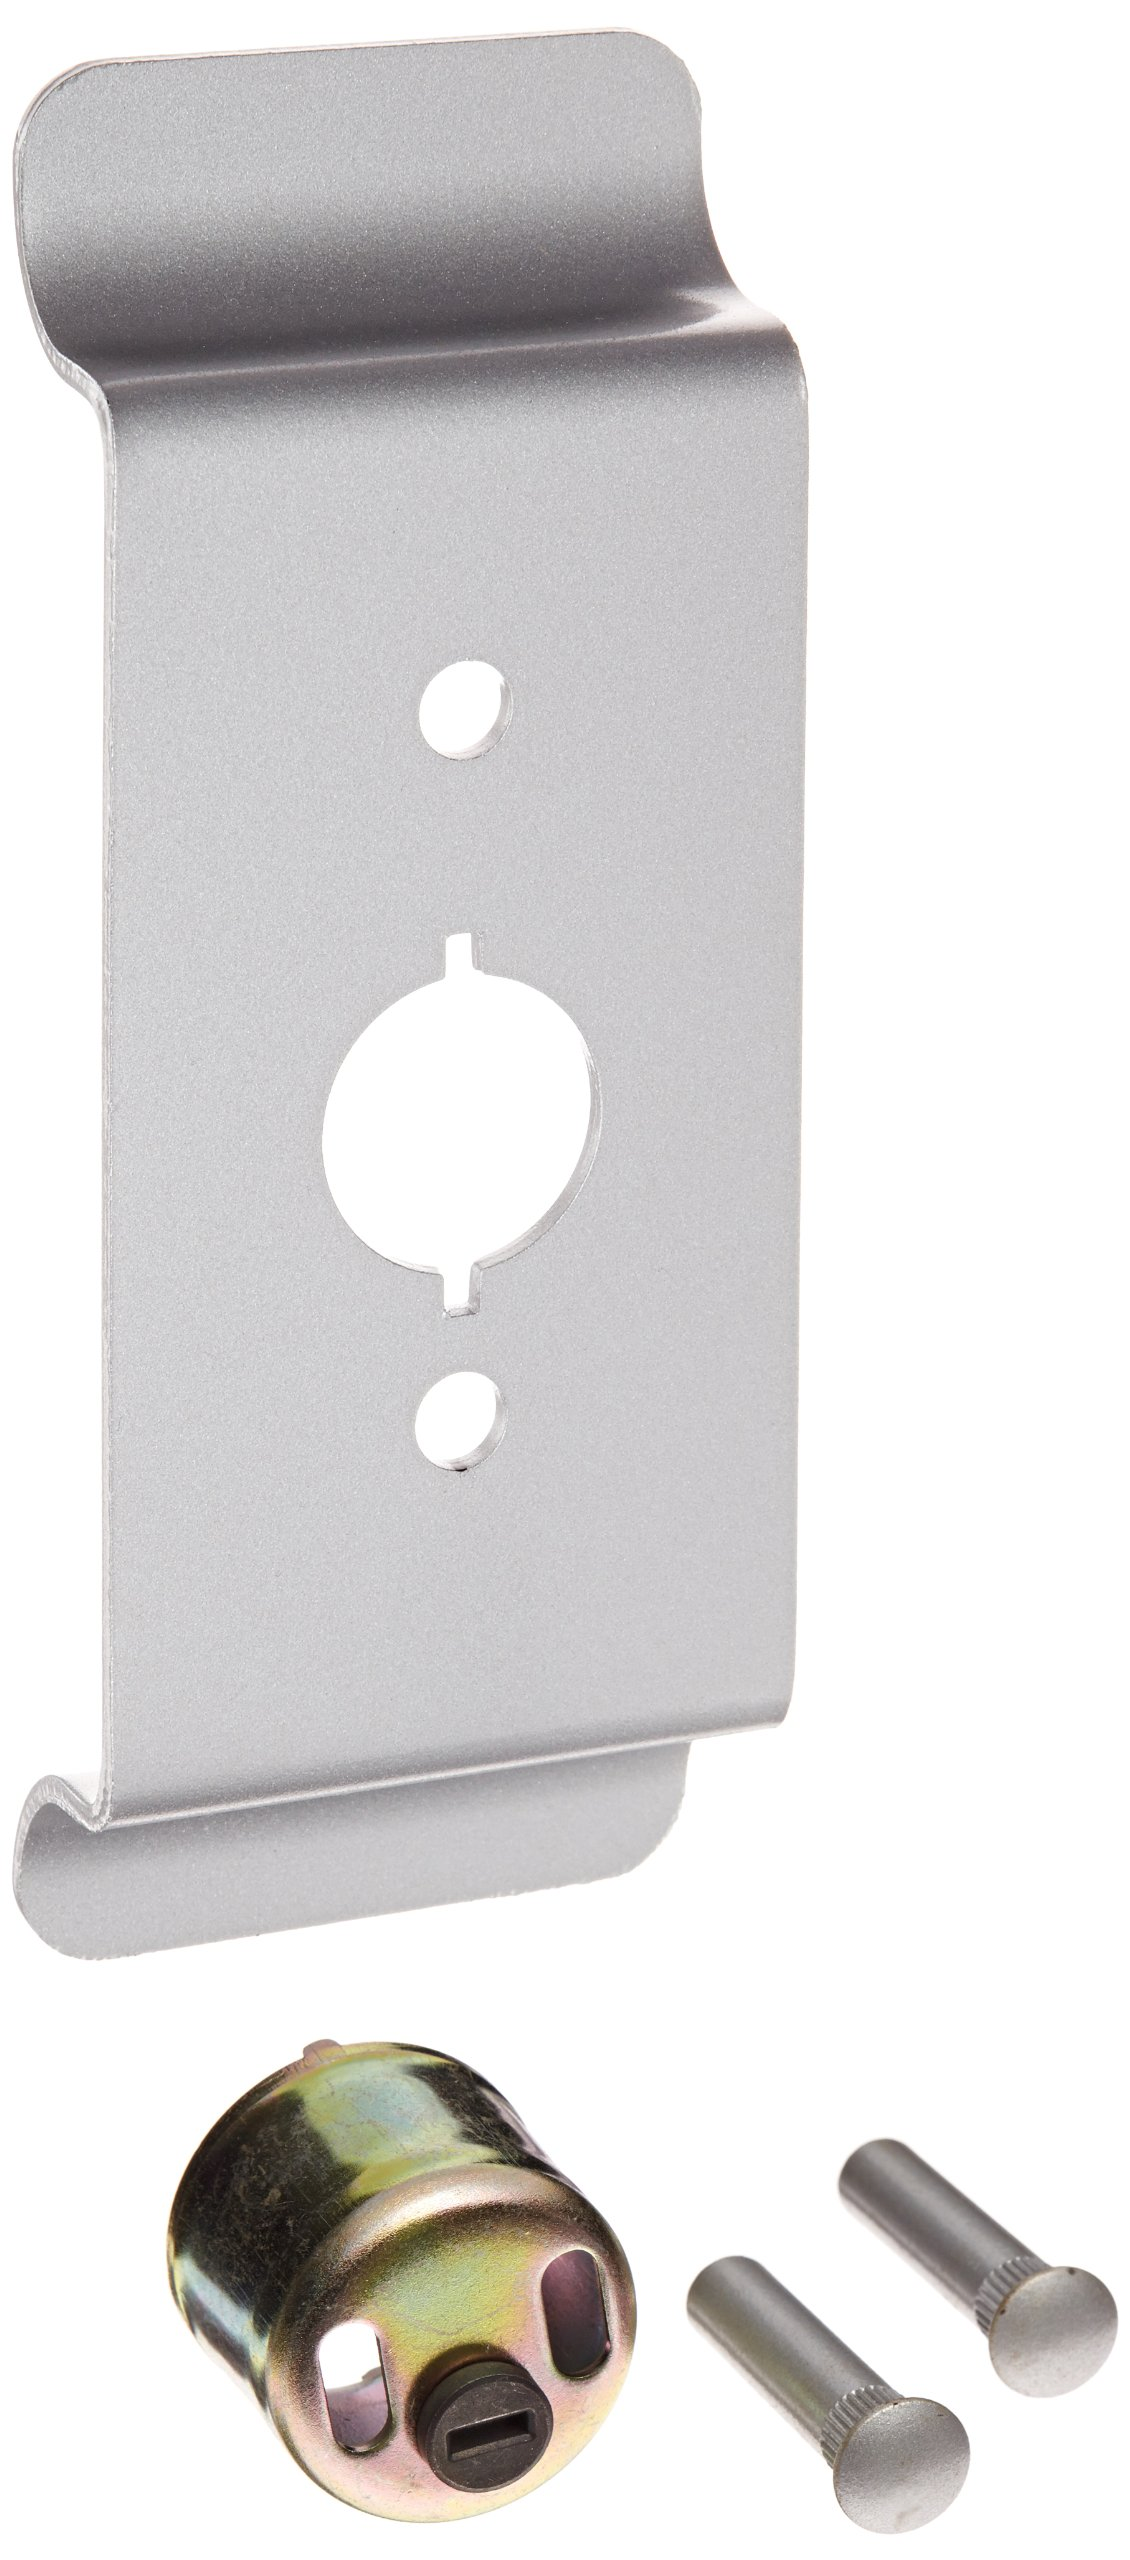 Stanley Commercial Hardware Stainless Steel Gull Wing Escutcheon Pull Standard Duty Exit Trim from the QET300 Collection, Rim Cylinder Type, Painted Aluminum Finish by Stanley Commercial Hardware